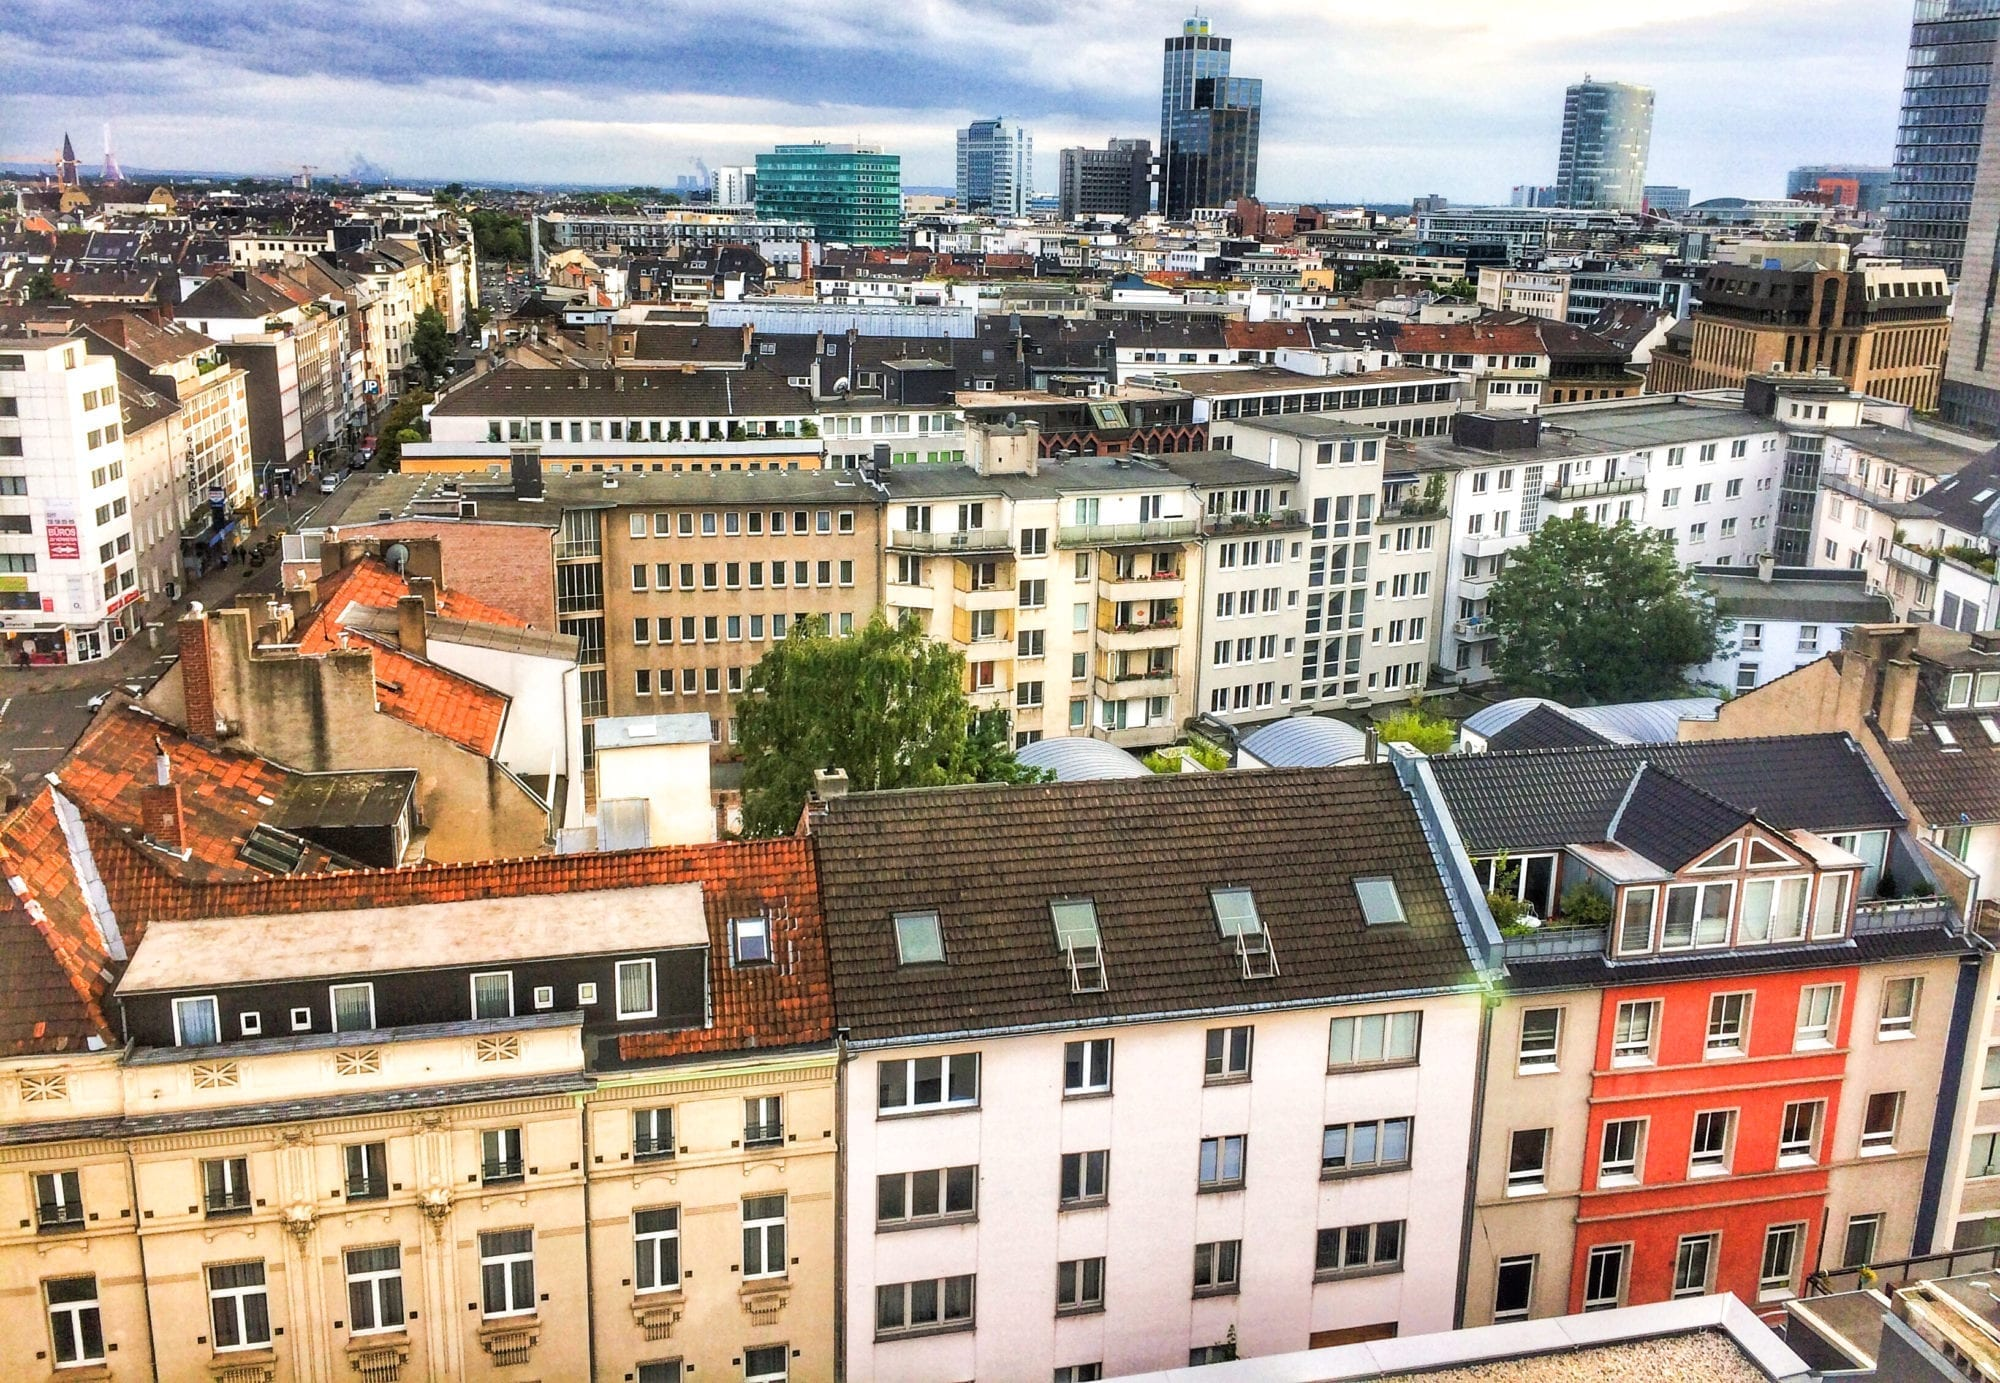 Buying a House in Germany | 6 Important Things You Need to Consider First